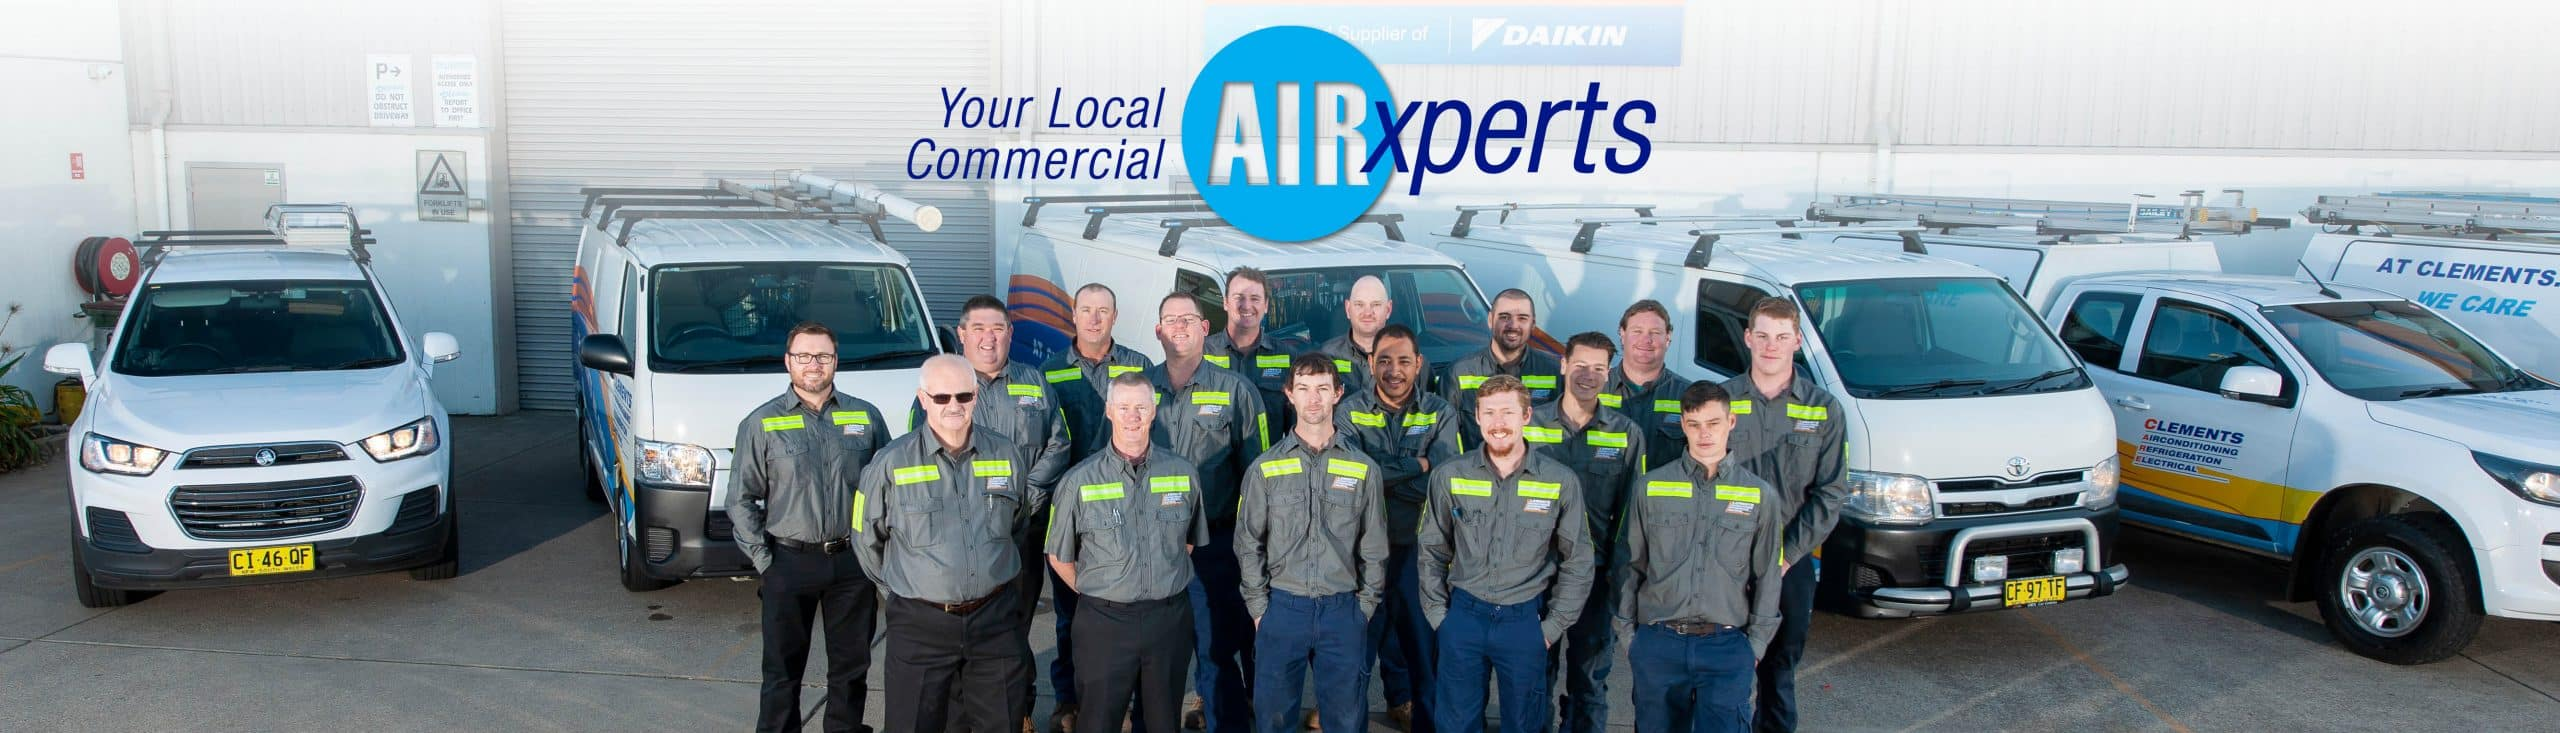 Clements Air Conditioning Your Local Commercial AIRxperts